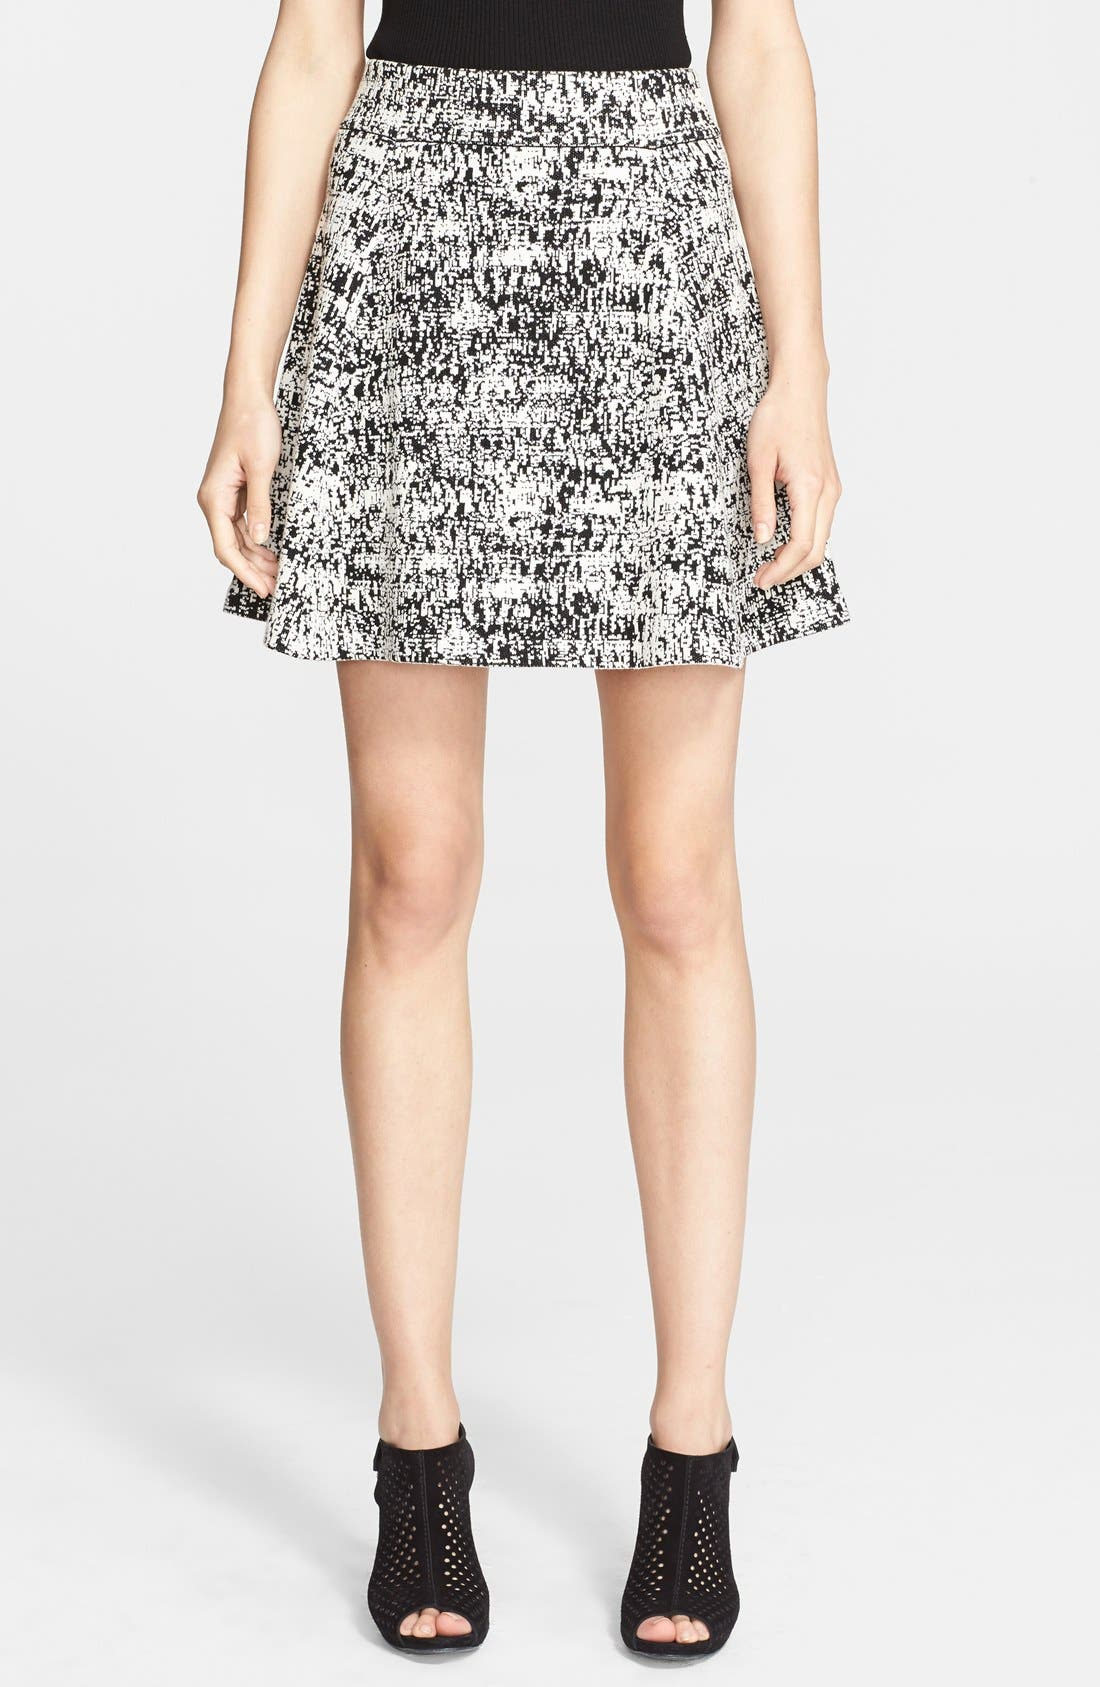 Alternate Image 1 Selected - Theory 'Doreene Tweedscape' Print Woven Skirt